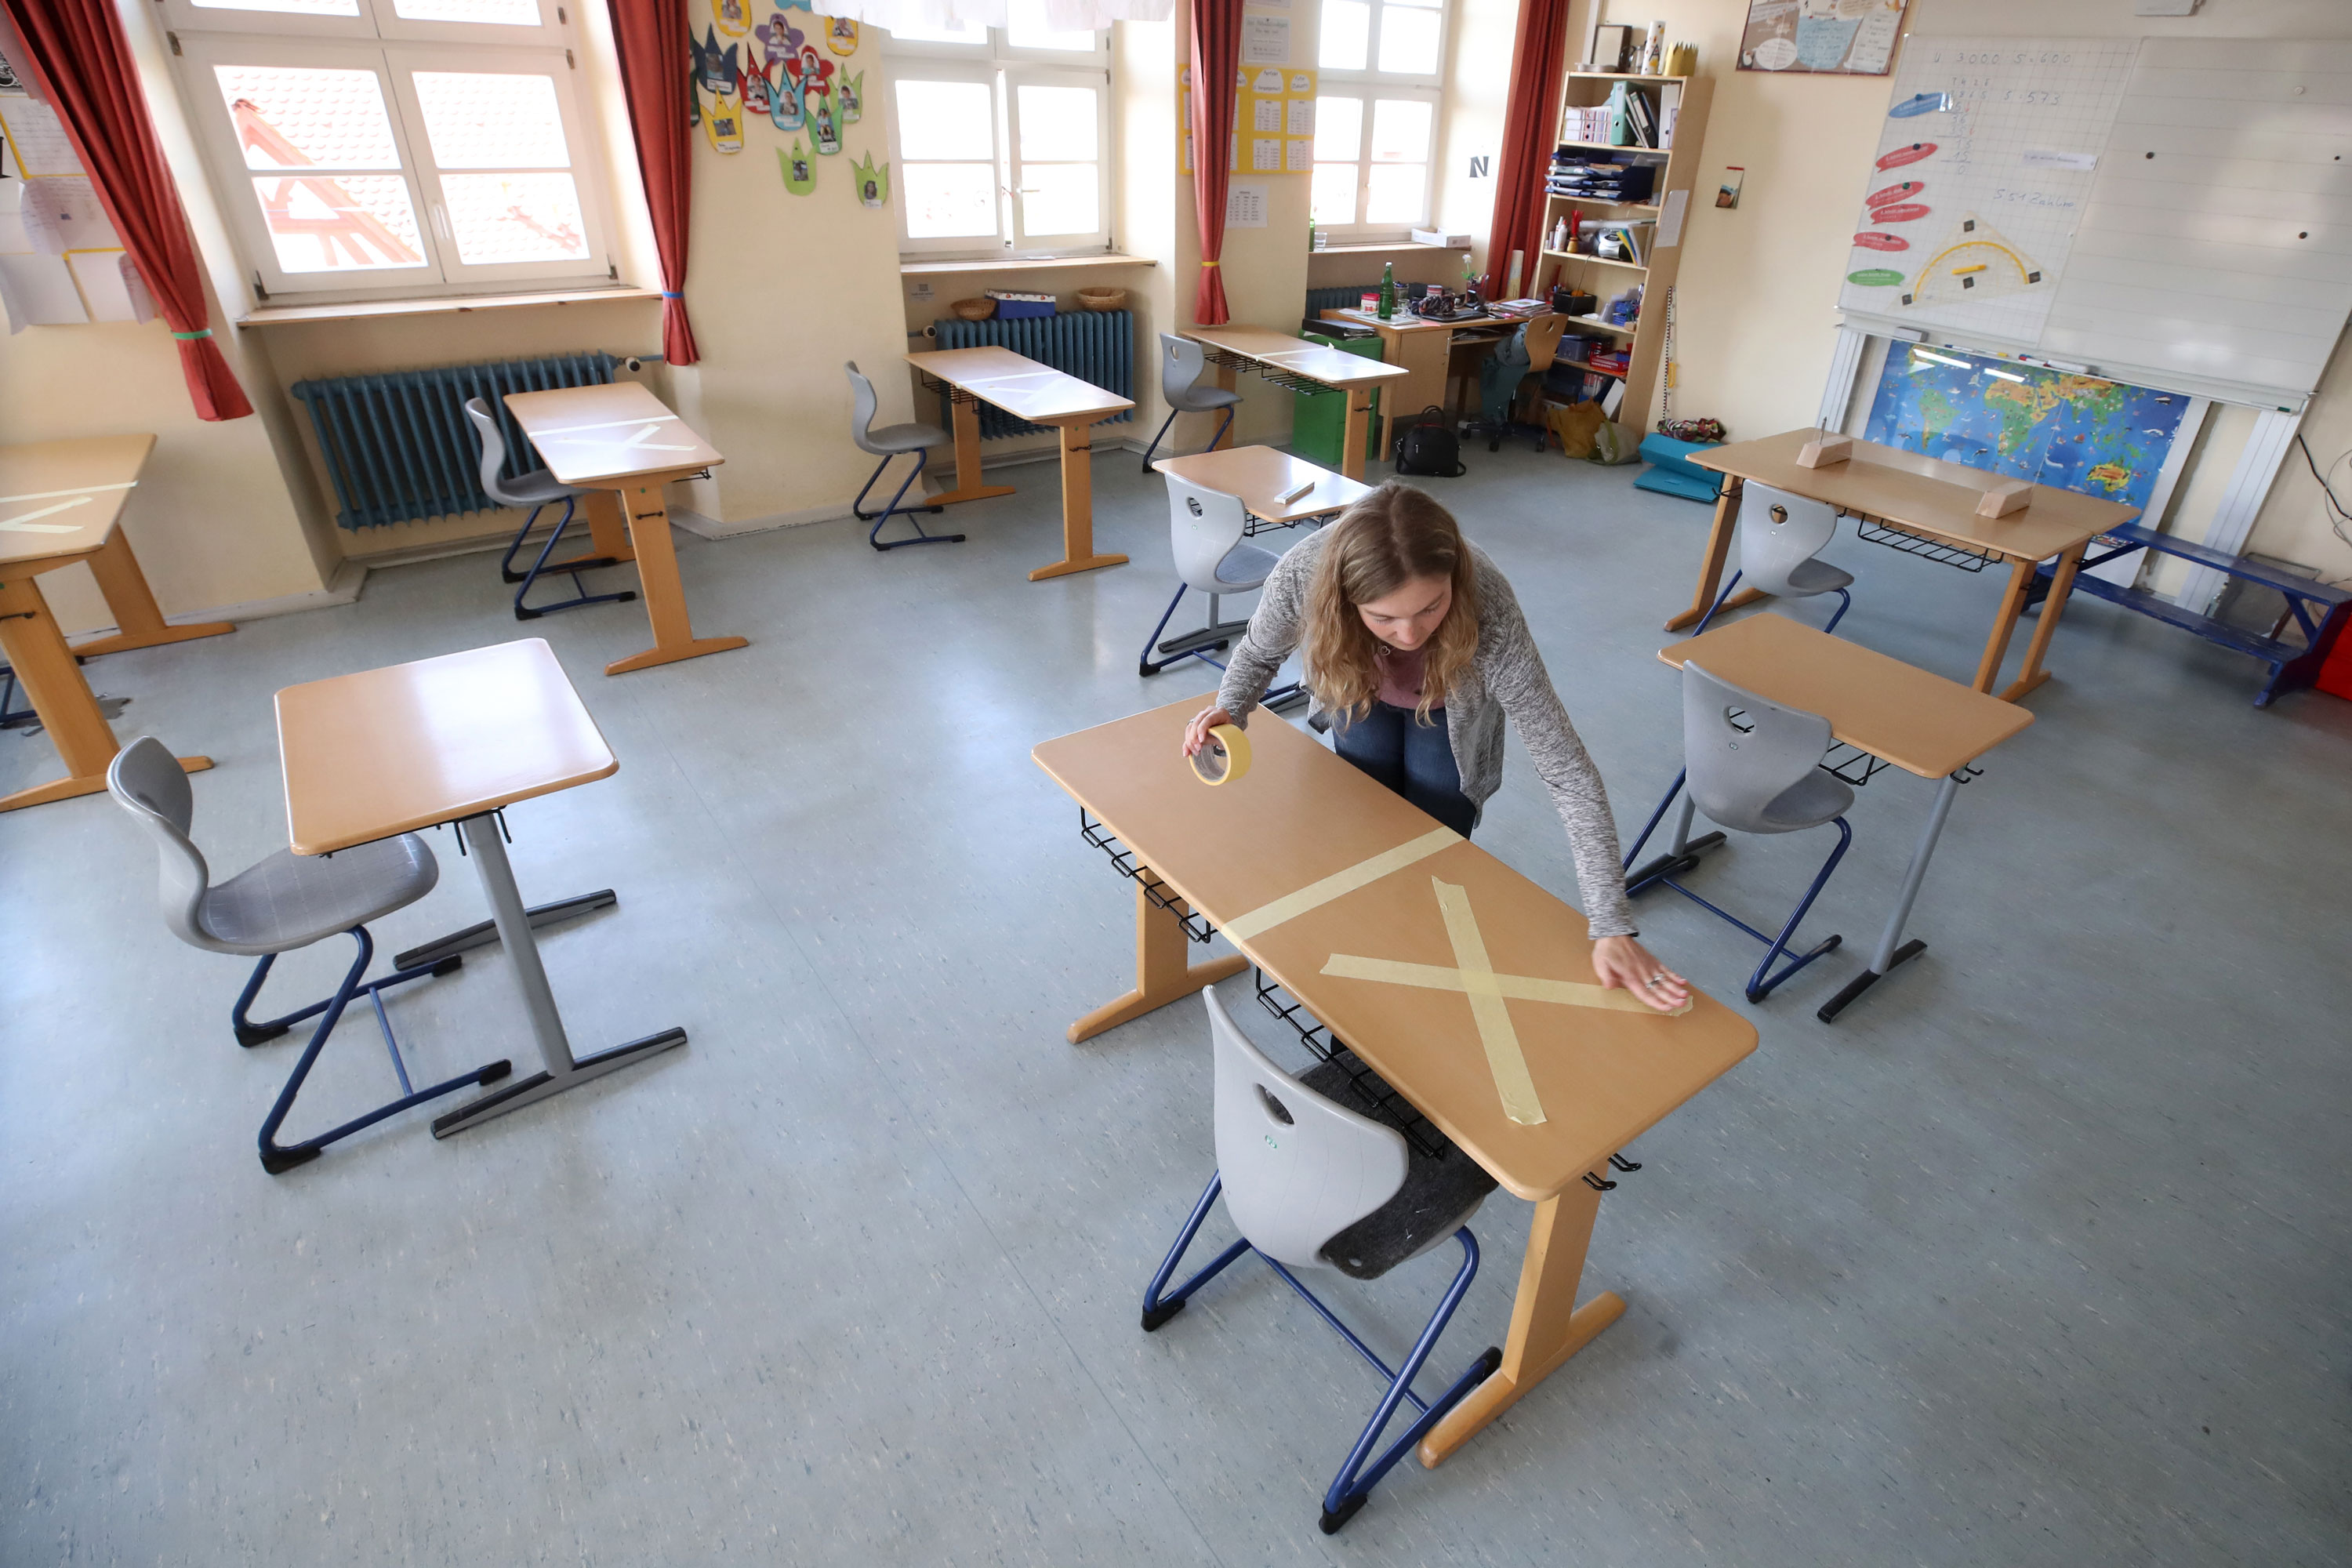 A staff member tapes social distancing markings during preparations for reopening a temporarily closed elementary school in Heppenheim, Germany, on April 21, 2020.